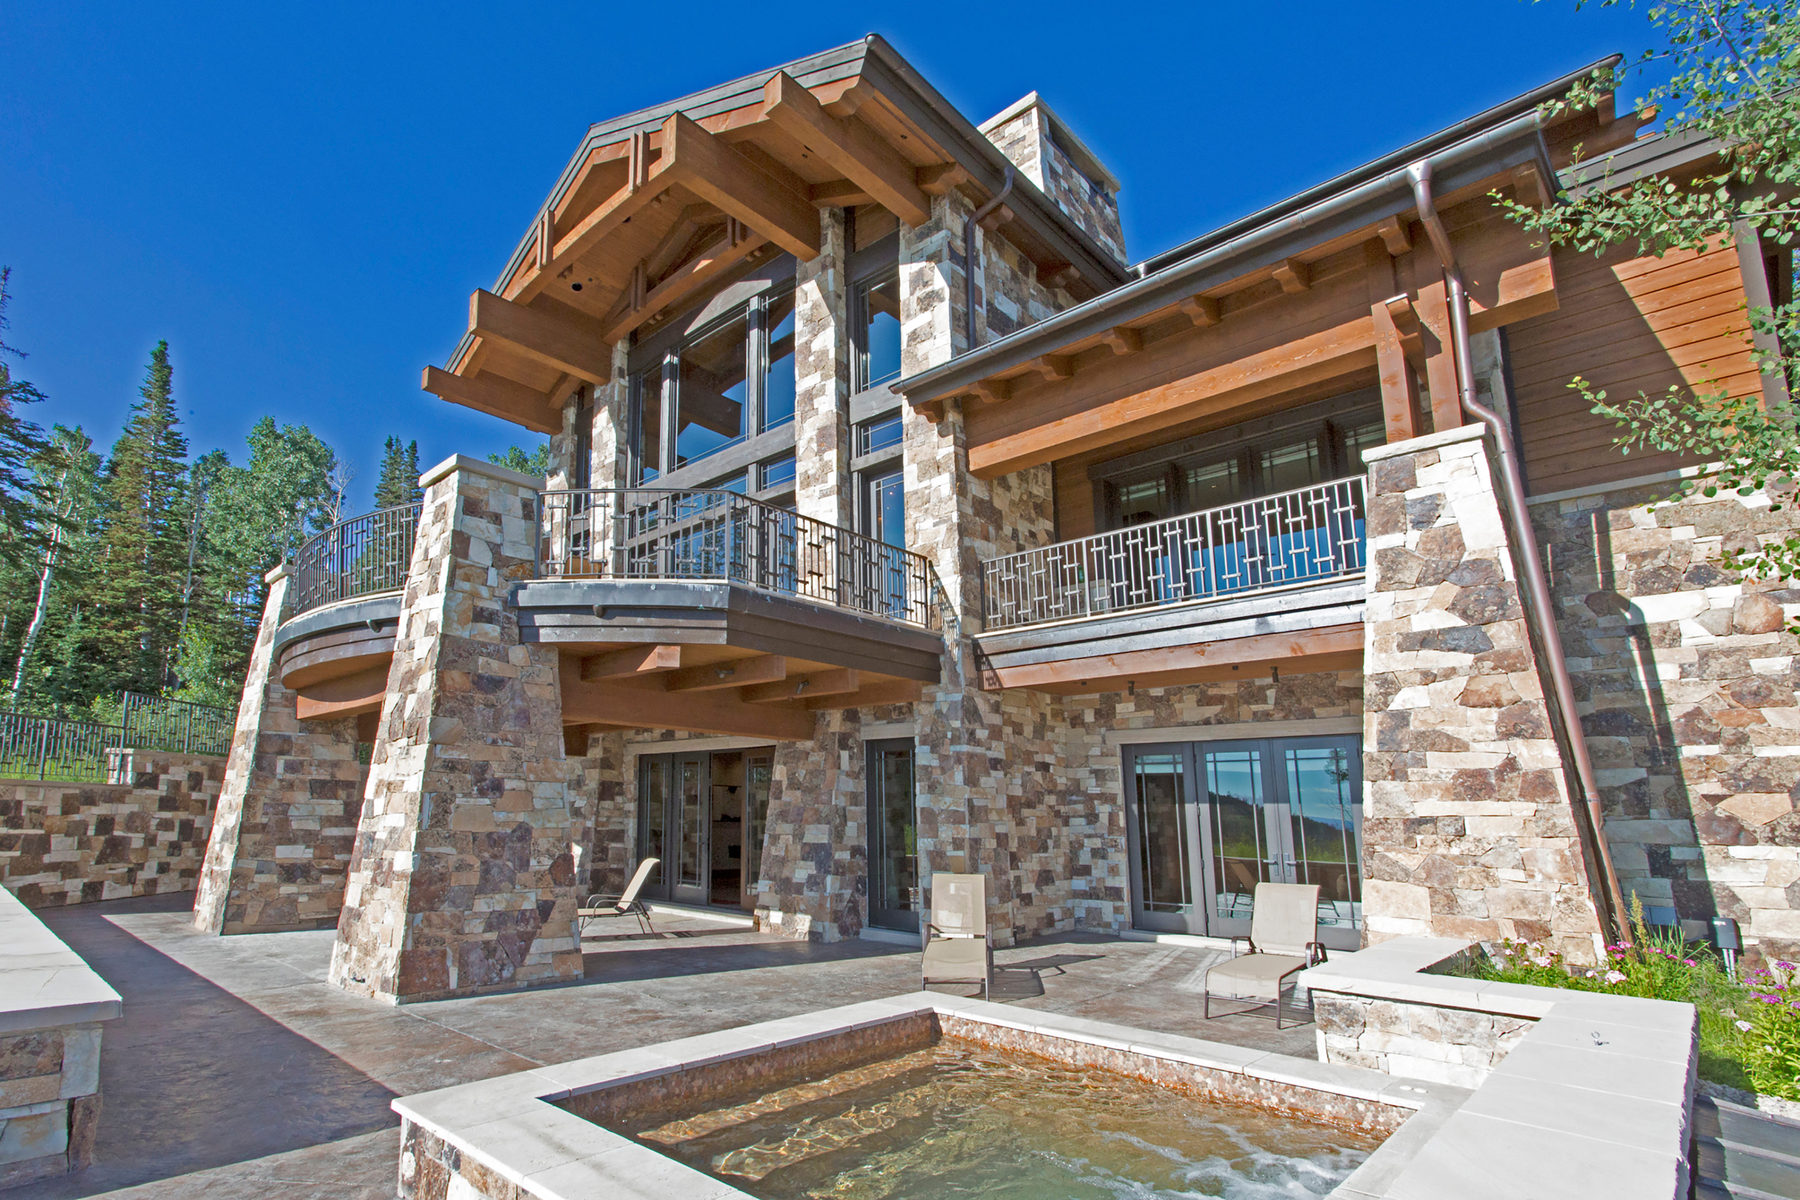 Single Family Home for Sale at Untracked Powder at the Top of the World 63 Red Cloud Trl Park City, Utah 84060 United States